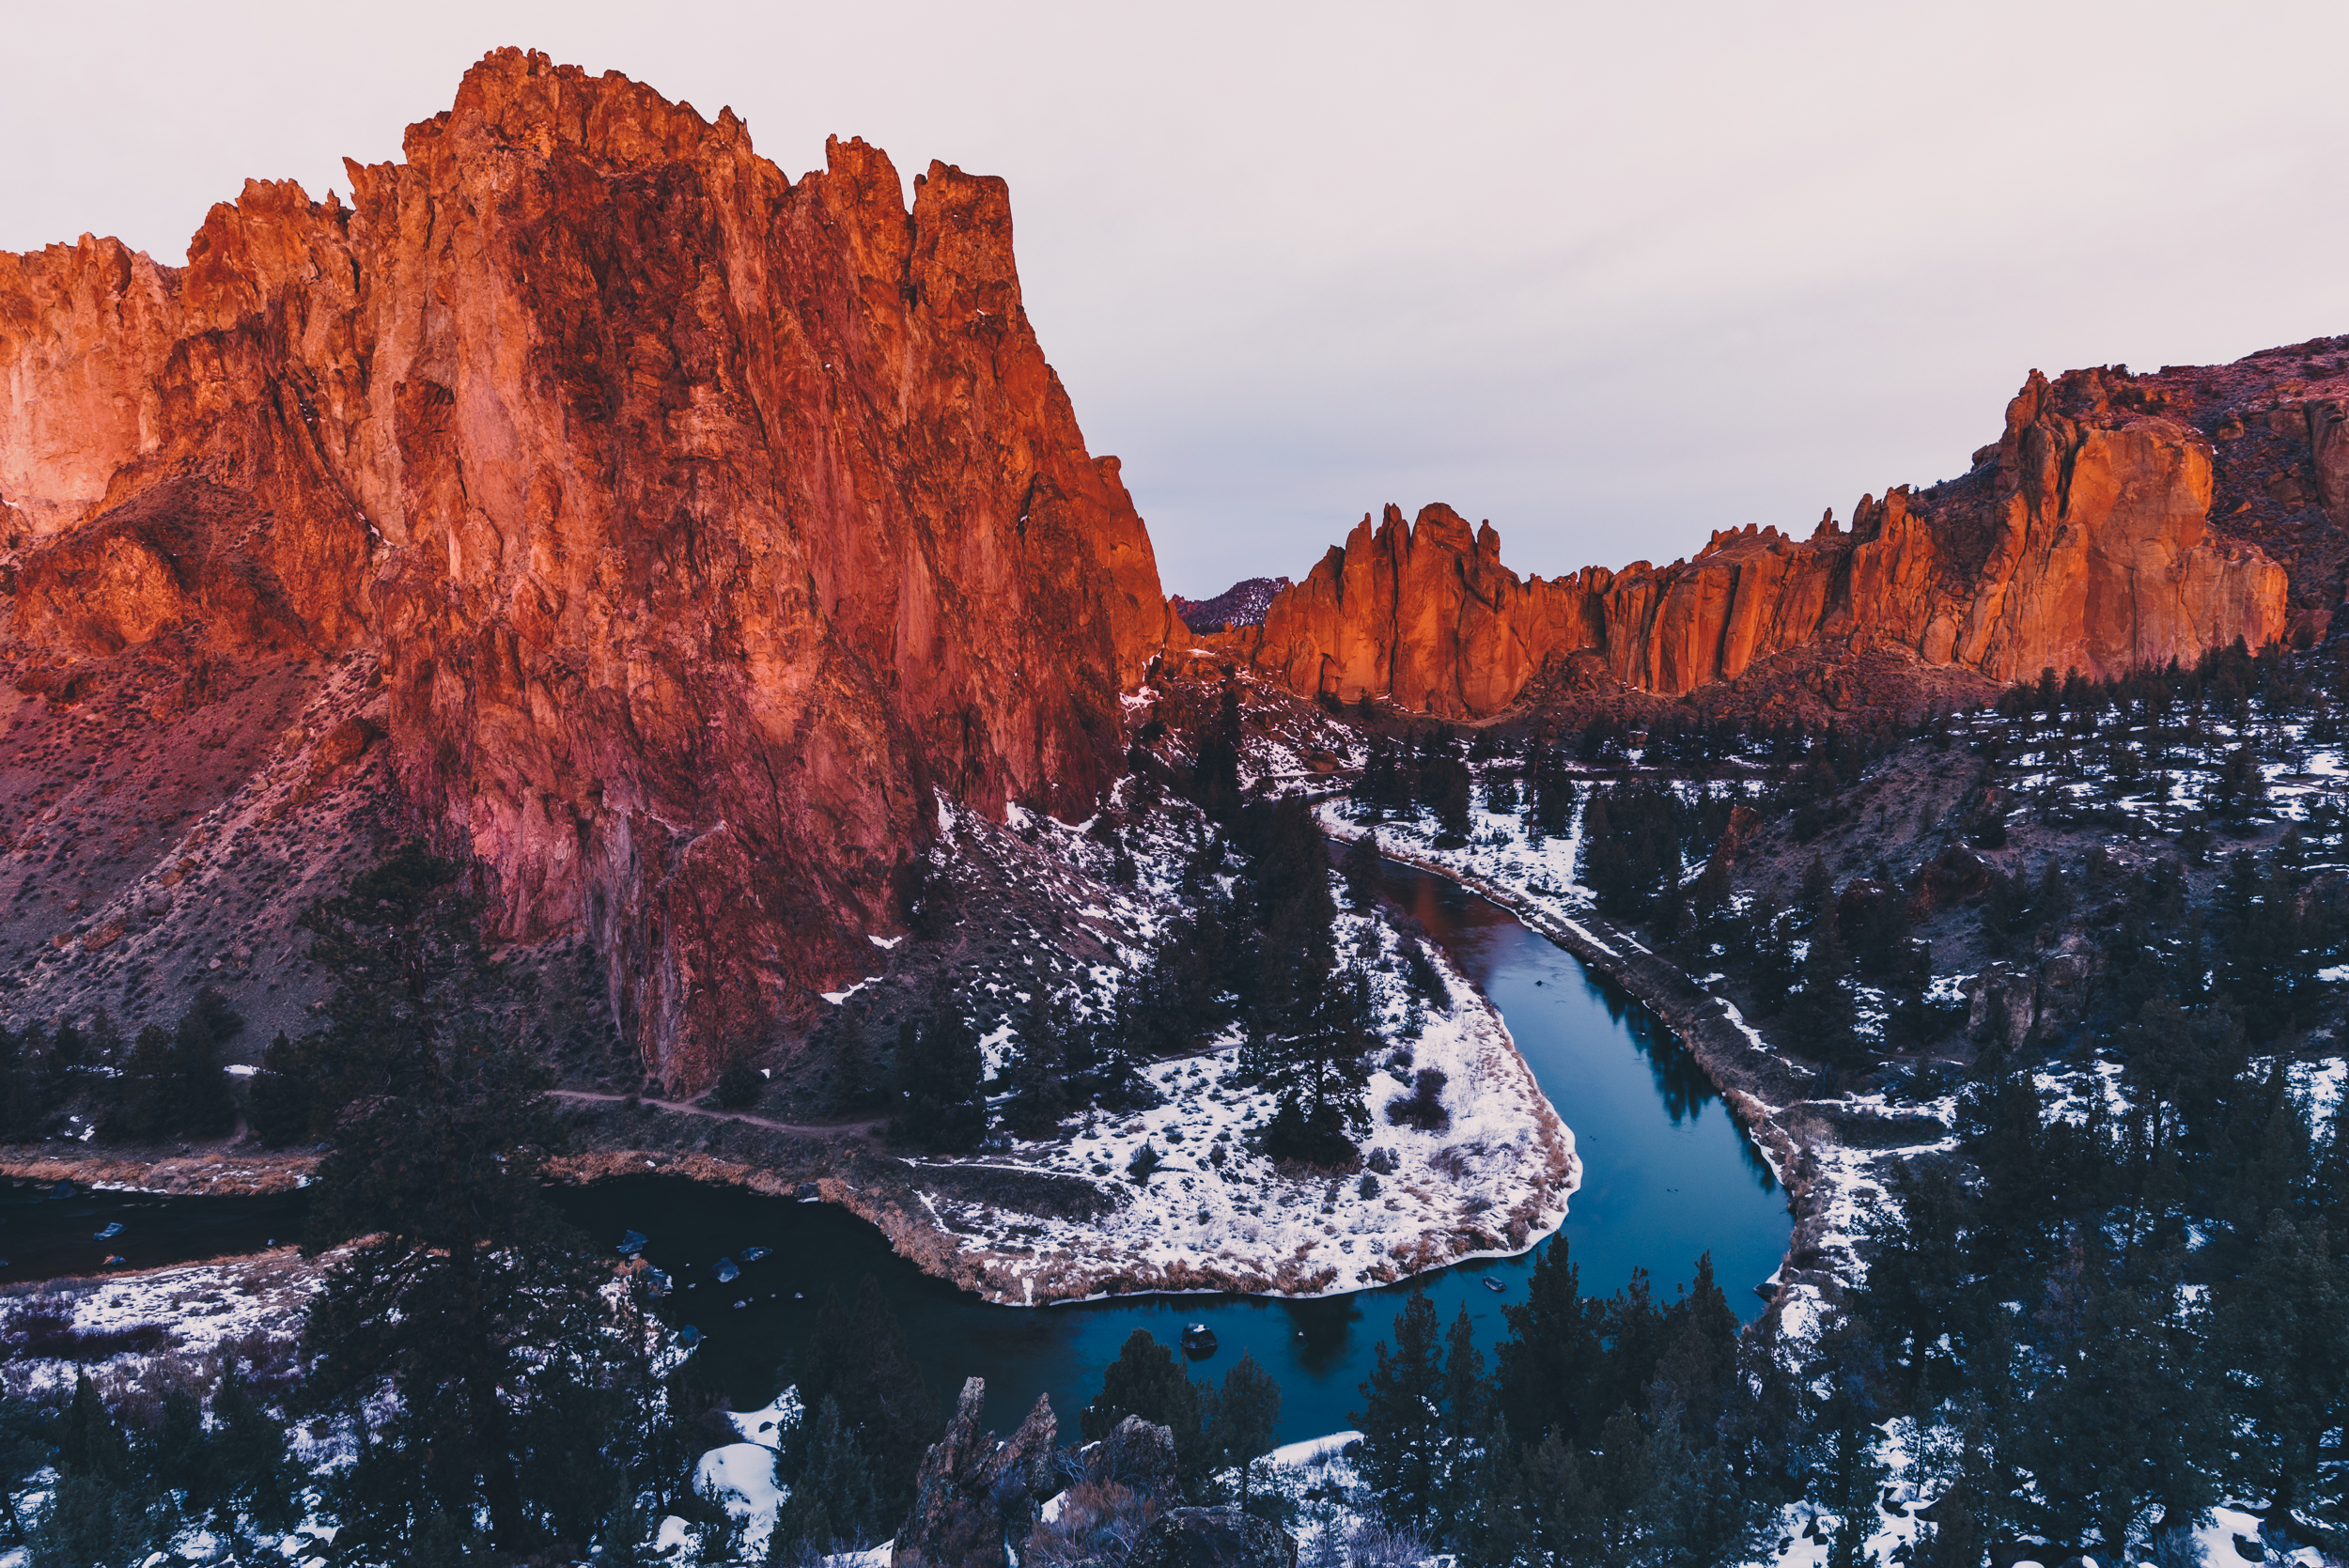 Smith-Rock-Crooked-River-Alpenglow-Steve-Aliberti.jpg